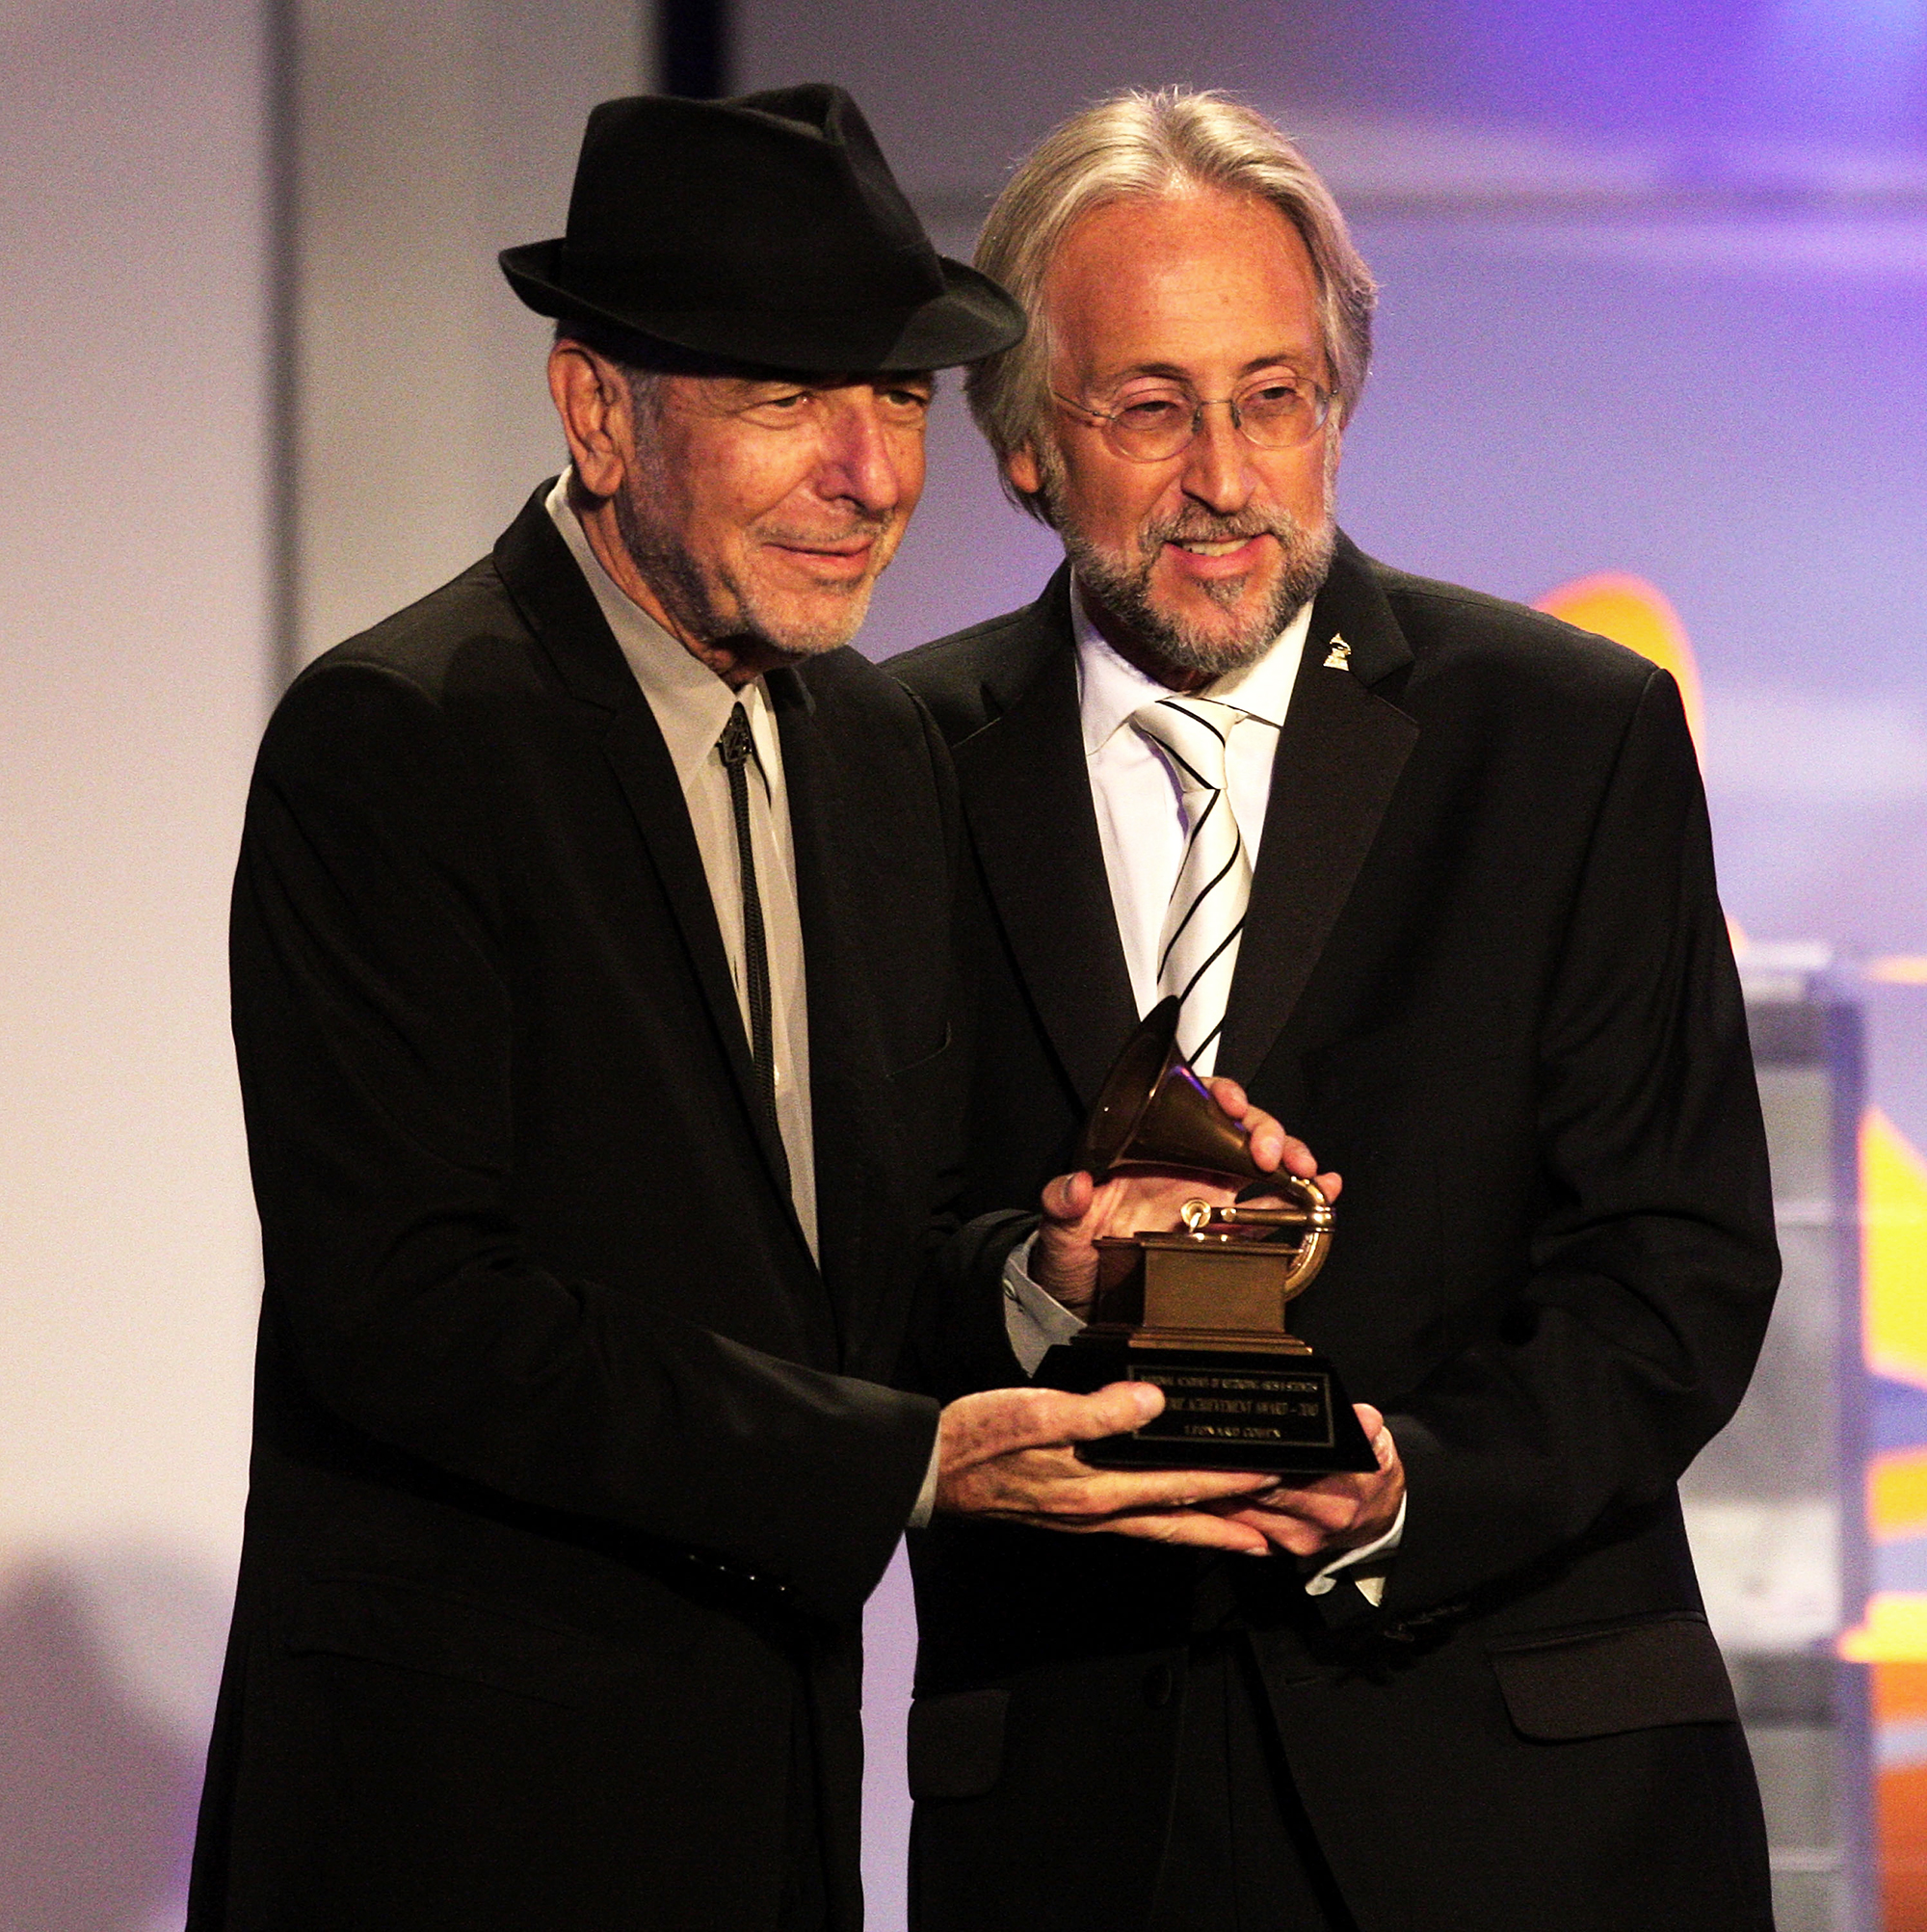 Leonard Cohen and Neil Portnow, President/CEO of the Recording Academy, attend the 52nd annual GRAMMY Awards-Special Merit Awards on Jan. 30, 2010 in Los Angeles.